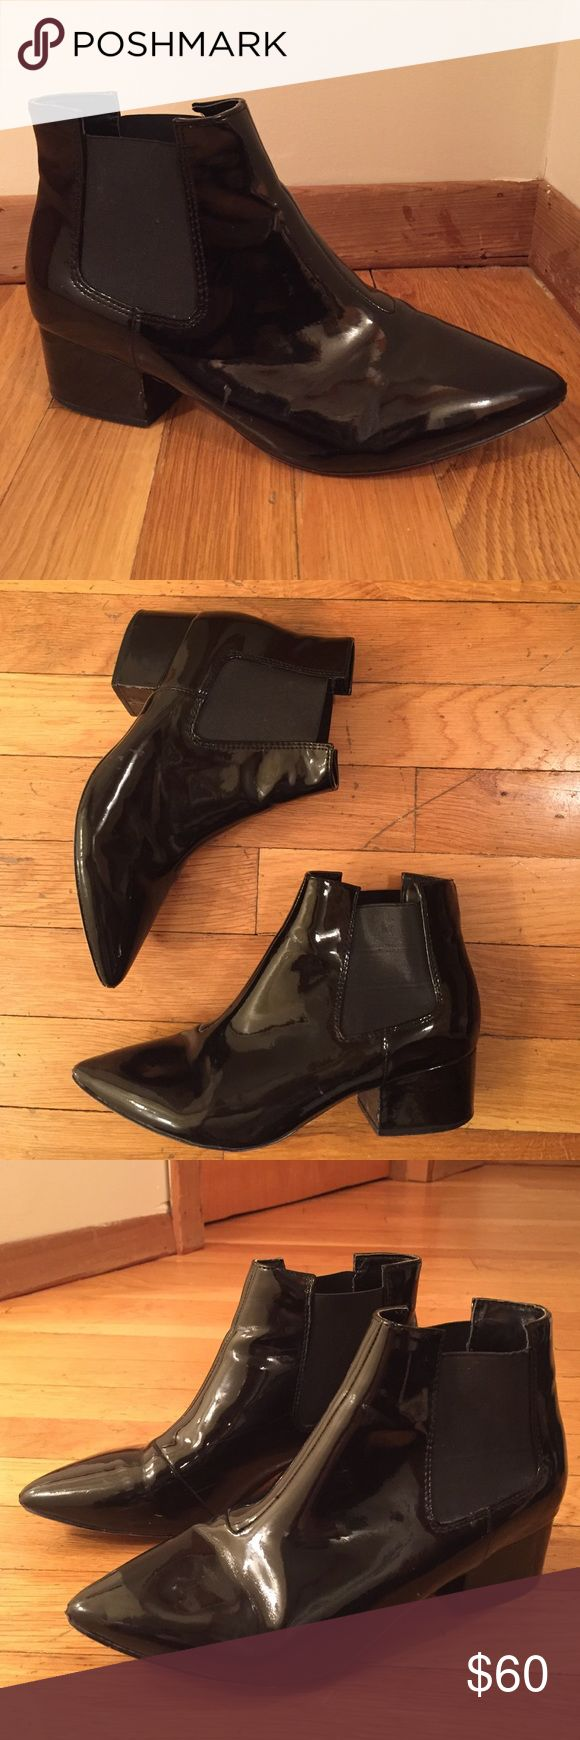 French Connection Black Patent Leather Booties French Connection Black Patent Leather Booties. Super comfortable. Size 6. Slight wear on points of shoes and one scuff along the side. French Connection Shoes Ankle Boots & Booties